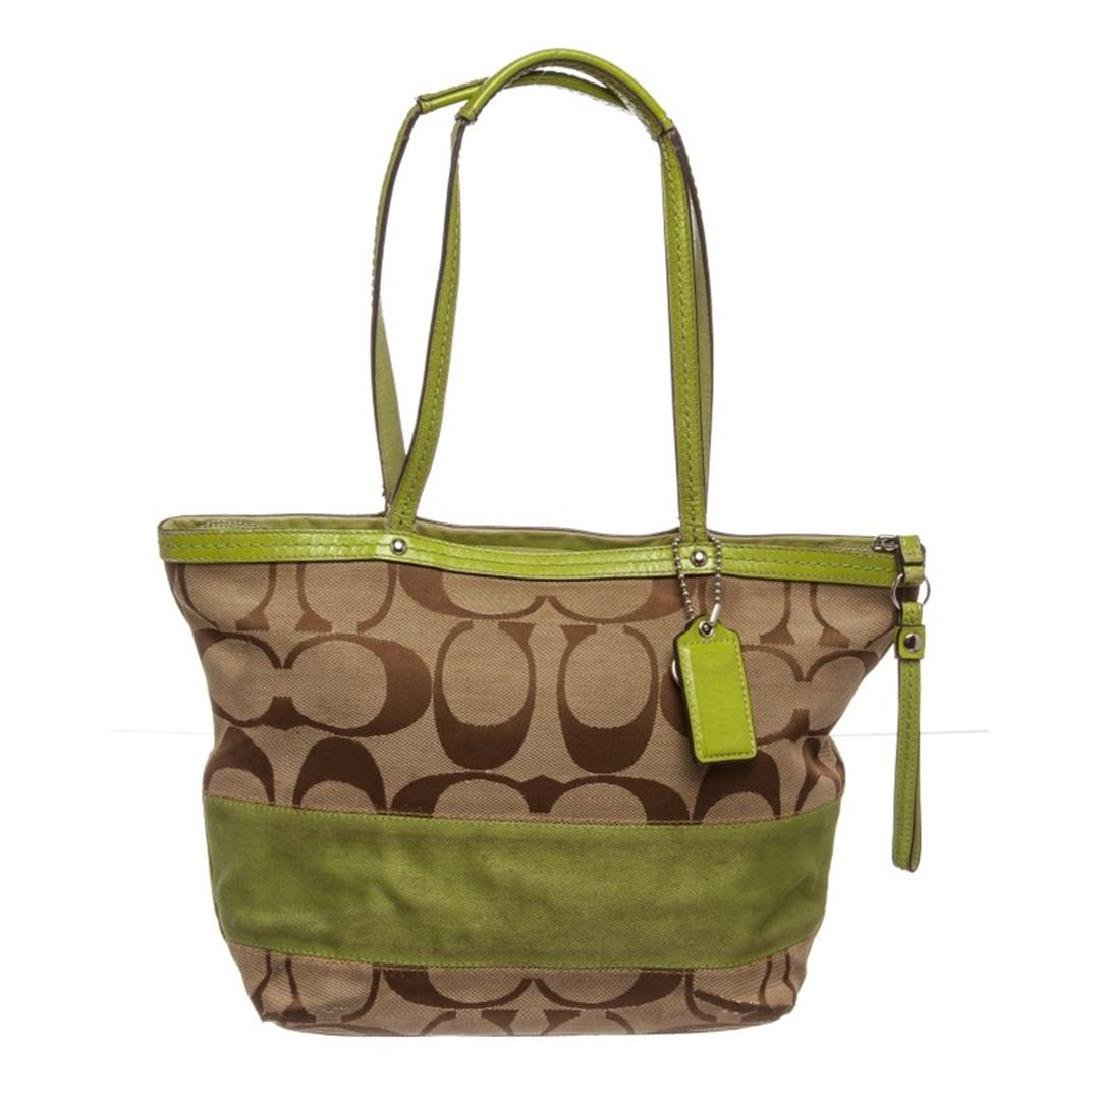 Coach Beige Green Canvas Leather Monogram Tote Bag